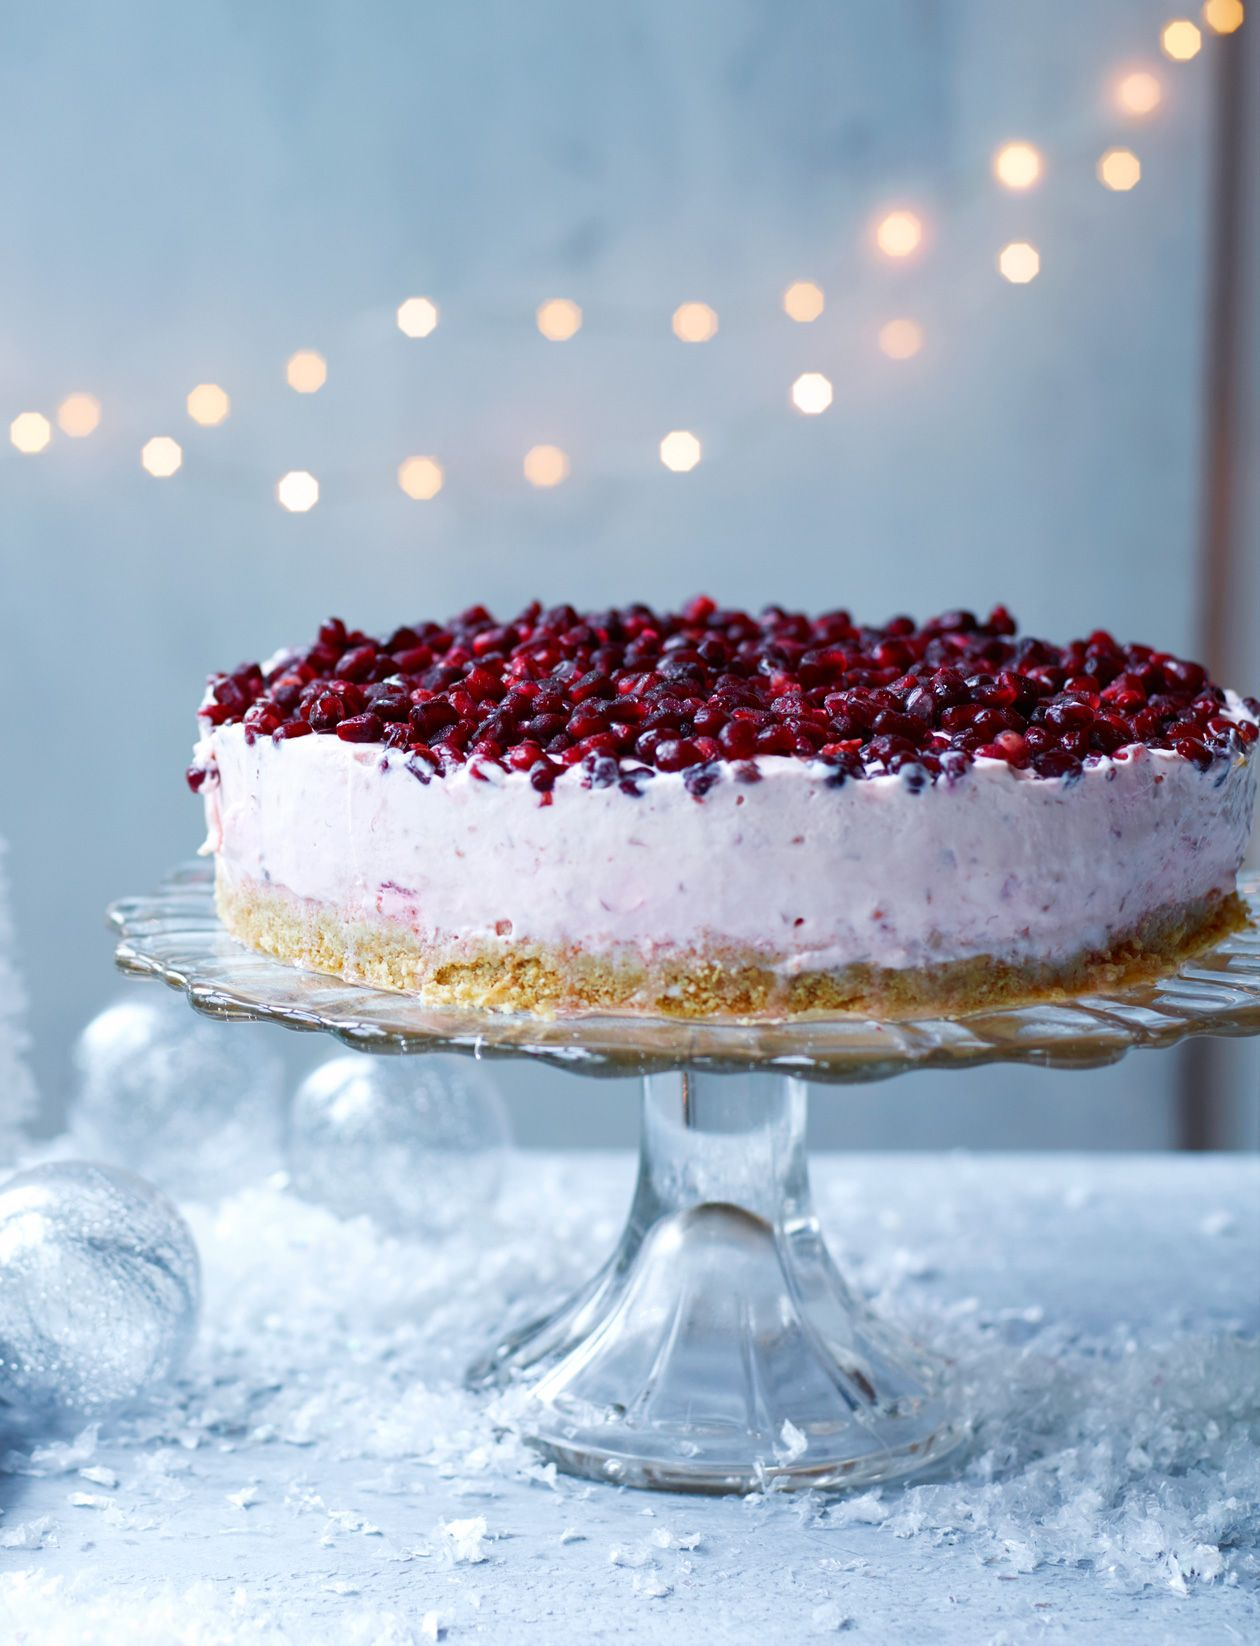 This glamorous pomegranate and raspberry cheesecake is ready to party